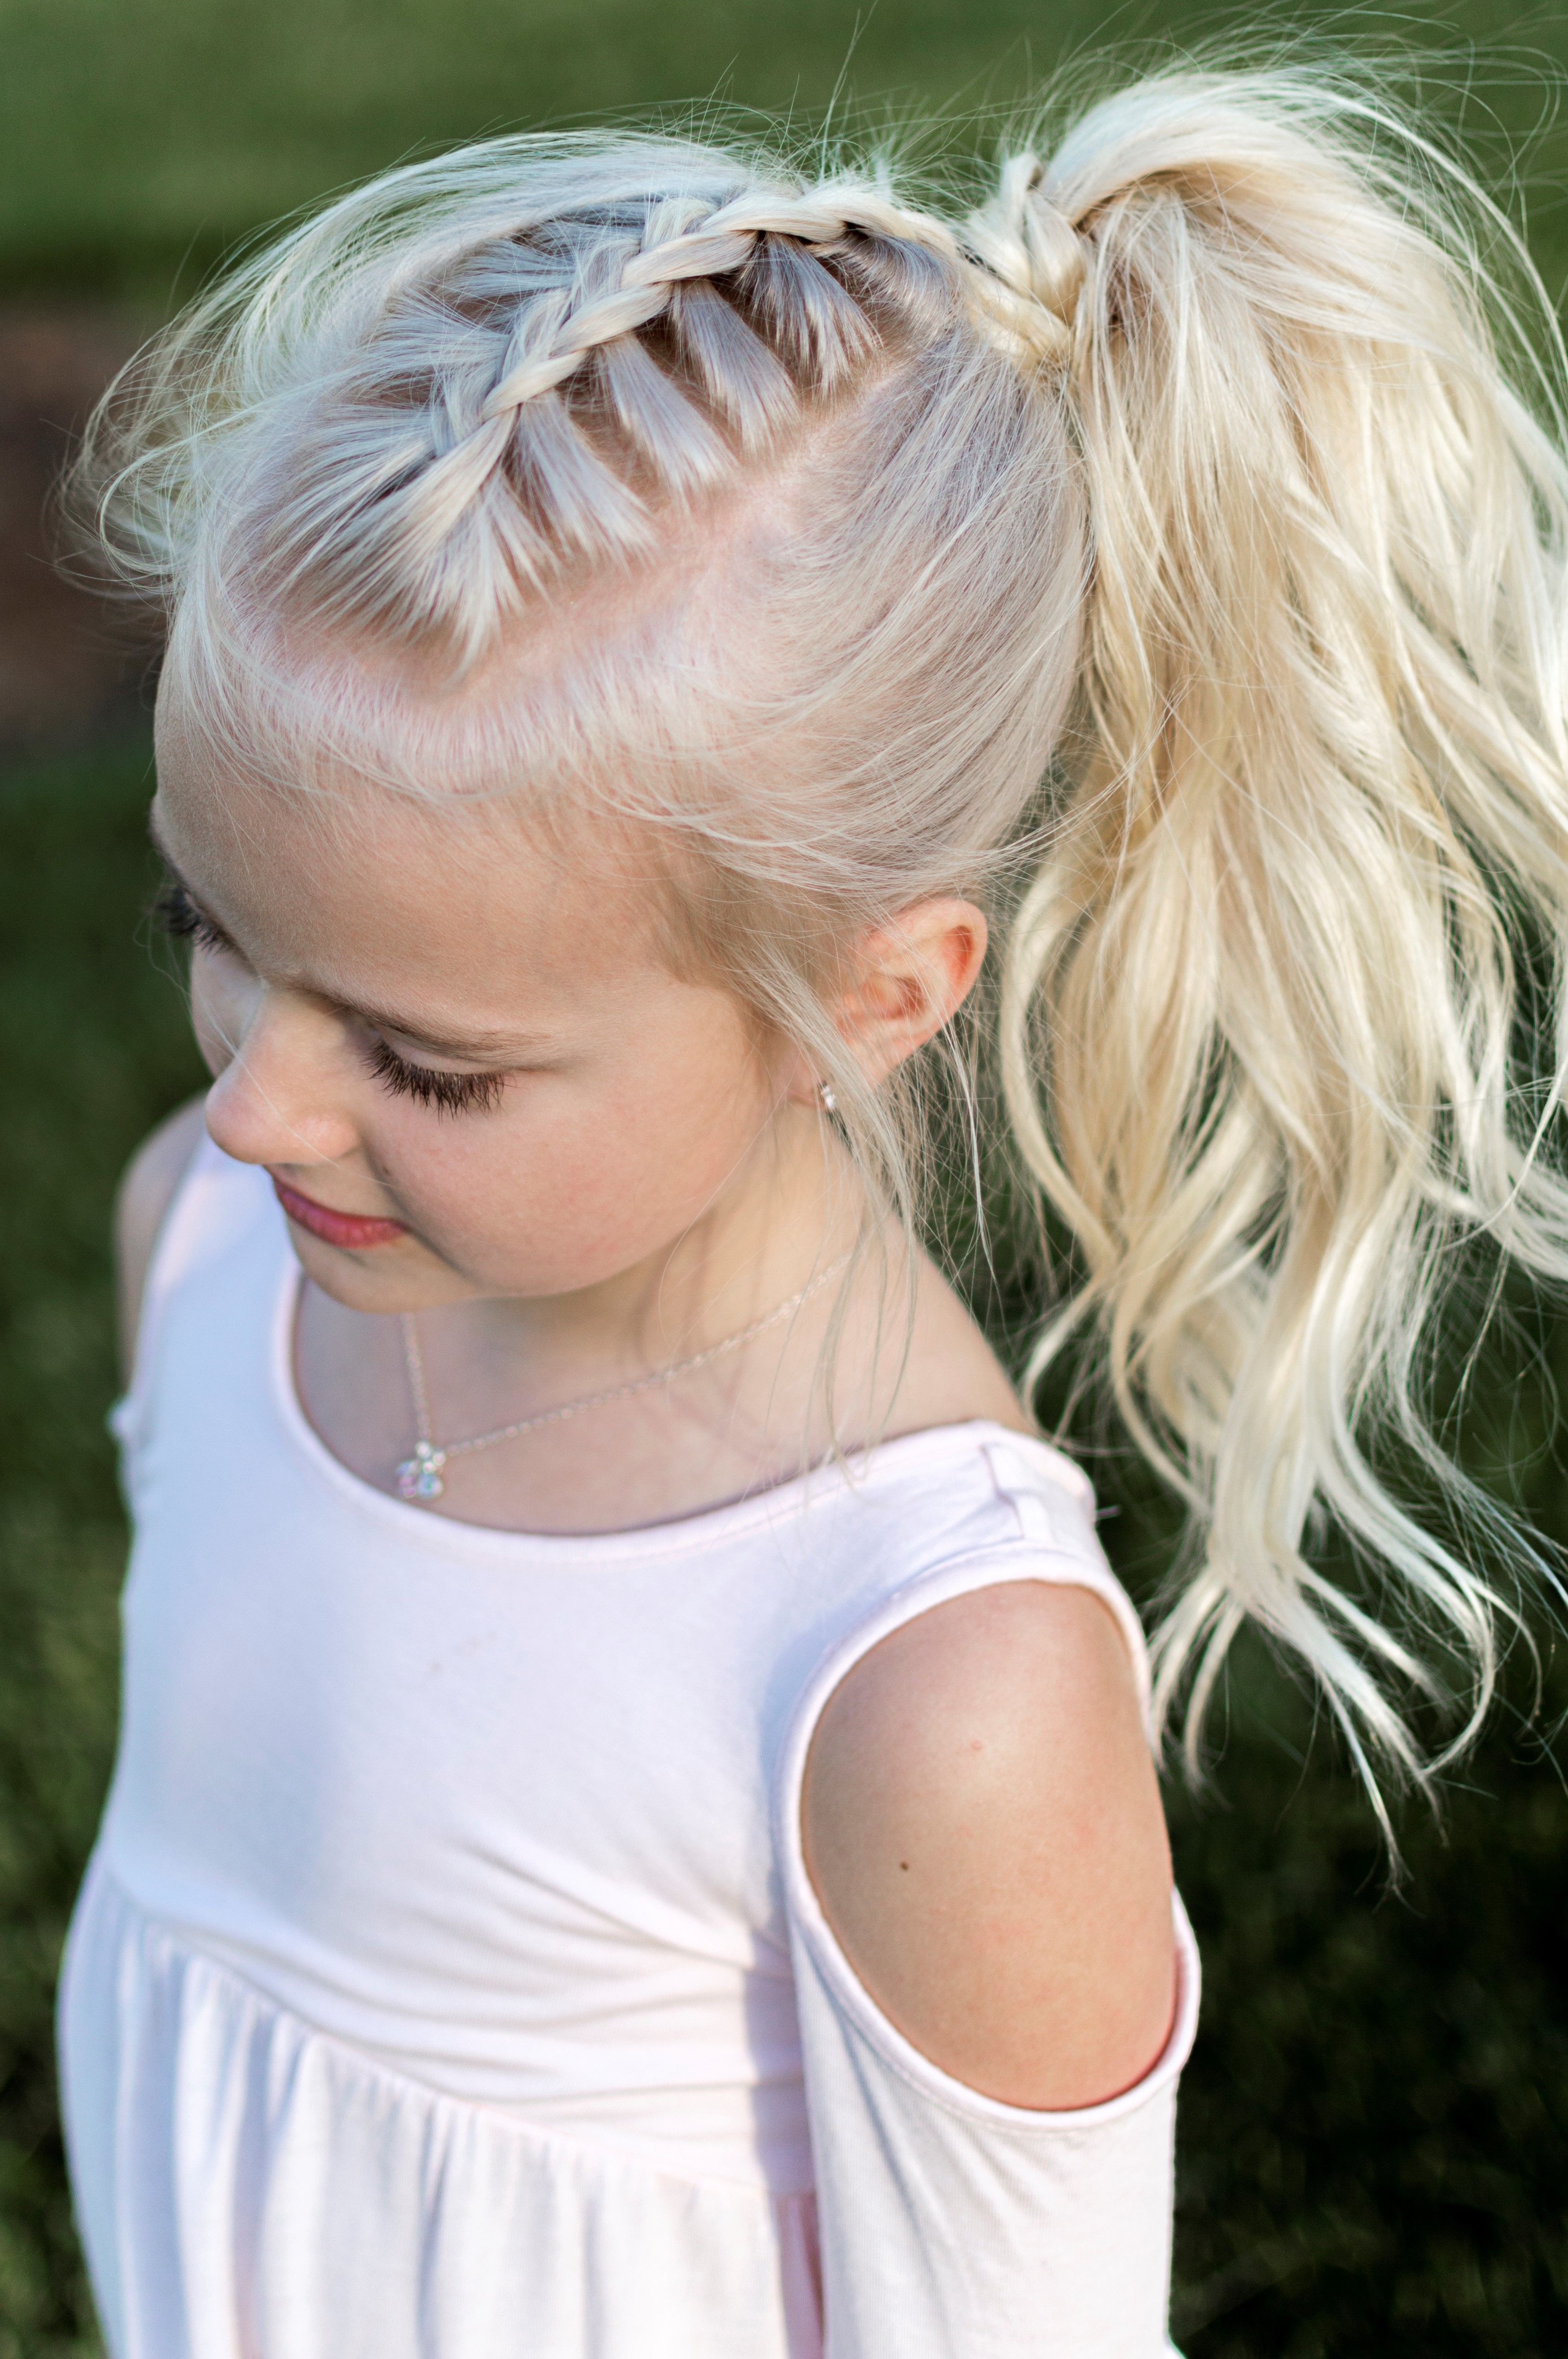 Little Girl Hairstyle French Braid Pony Tail Curls High Pony For Most Recently Released Asymmetrical Braids With Curly Pony (View 12 of 15)